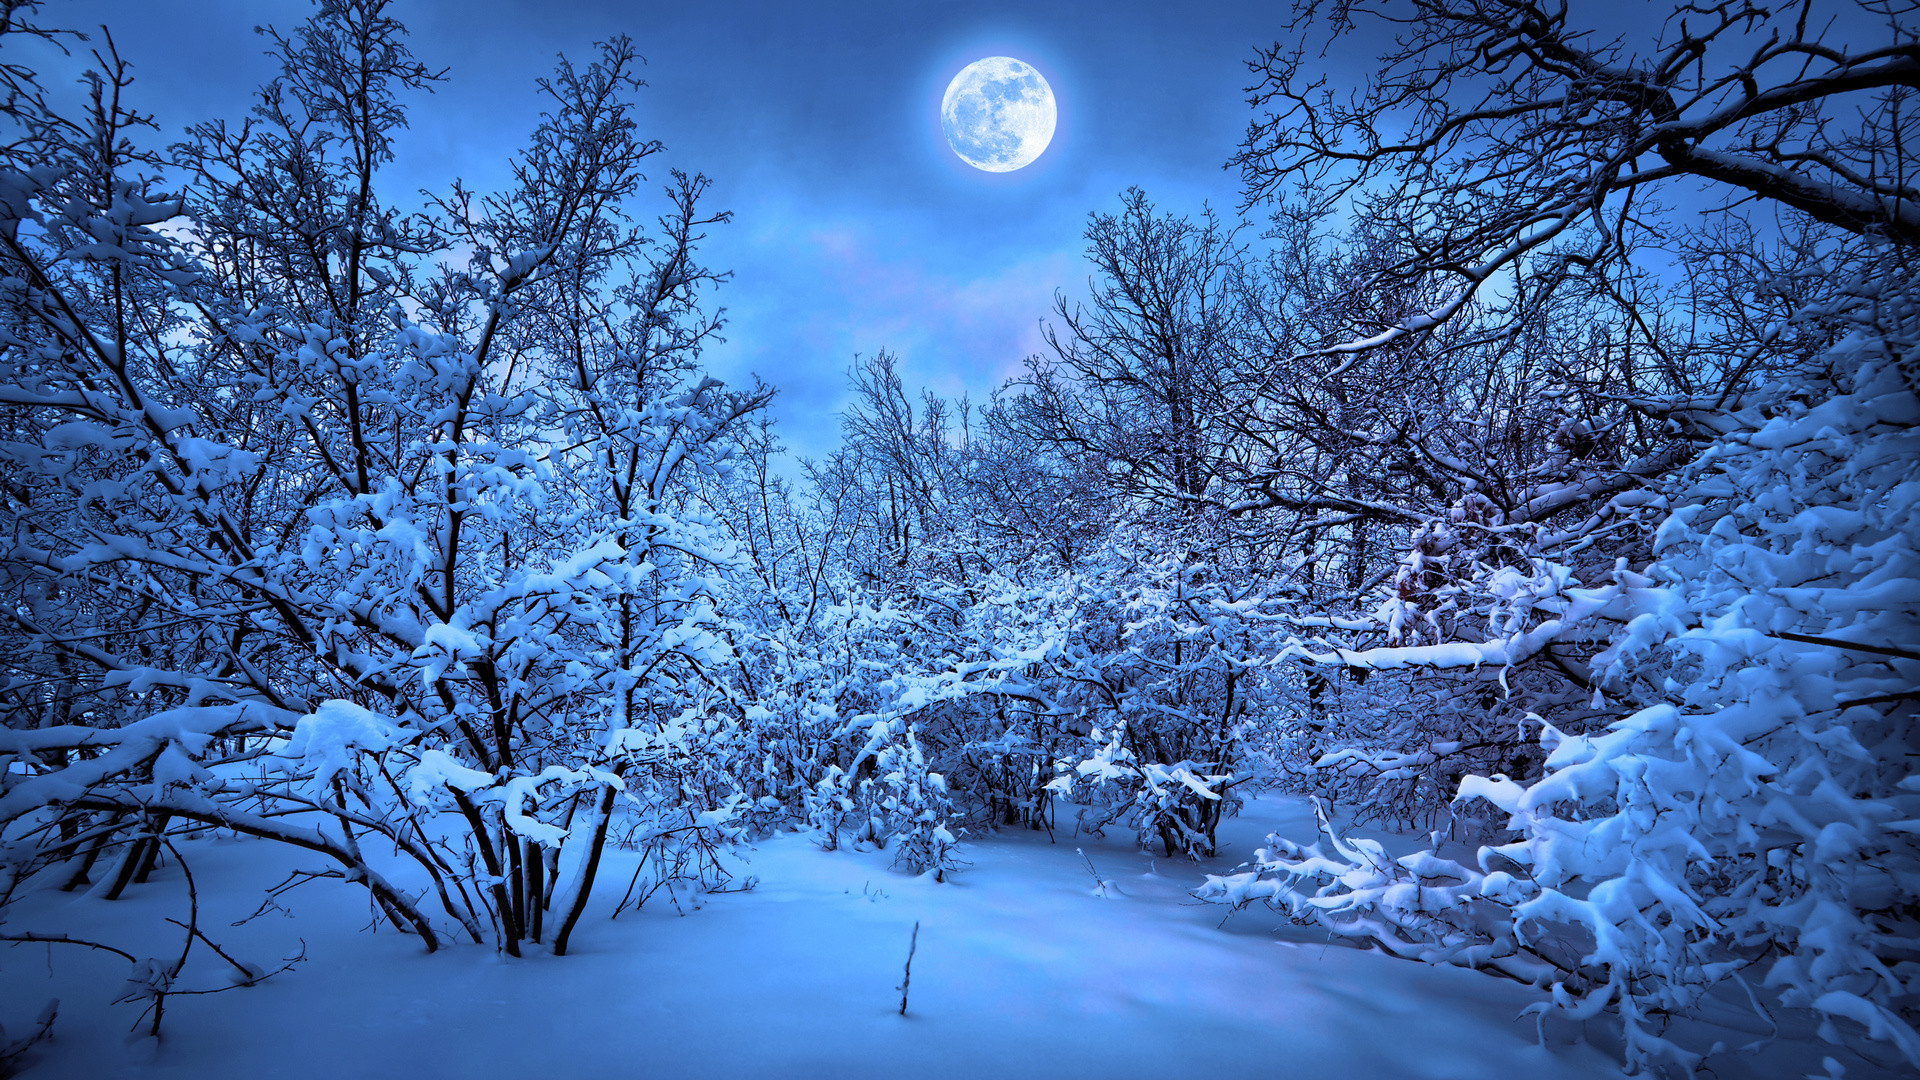 Res: 1920x1080, Snow Night Wallpaper Photo